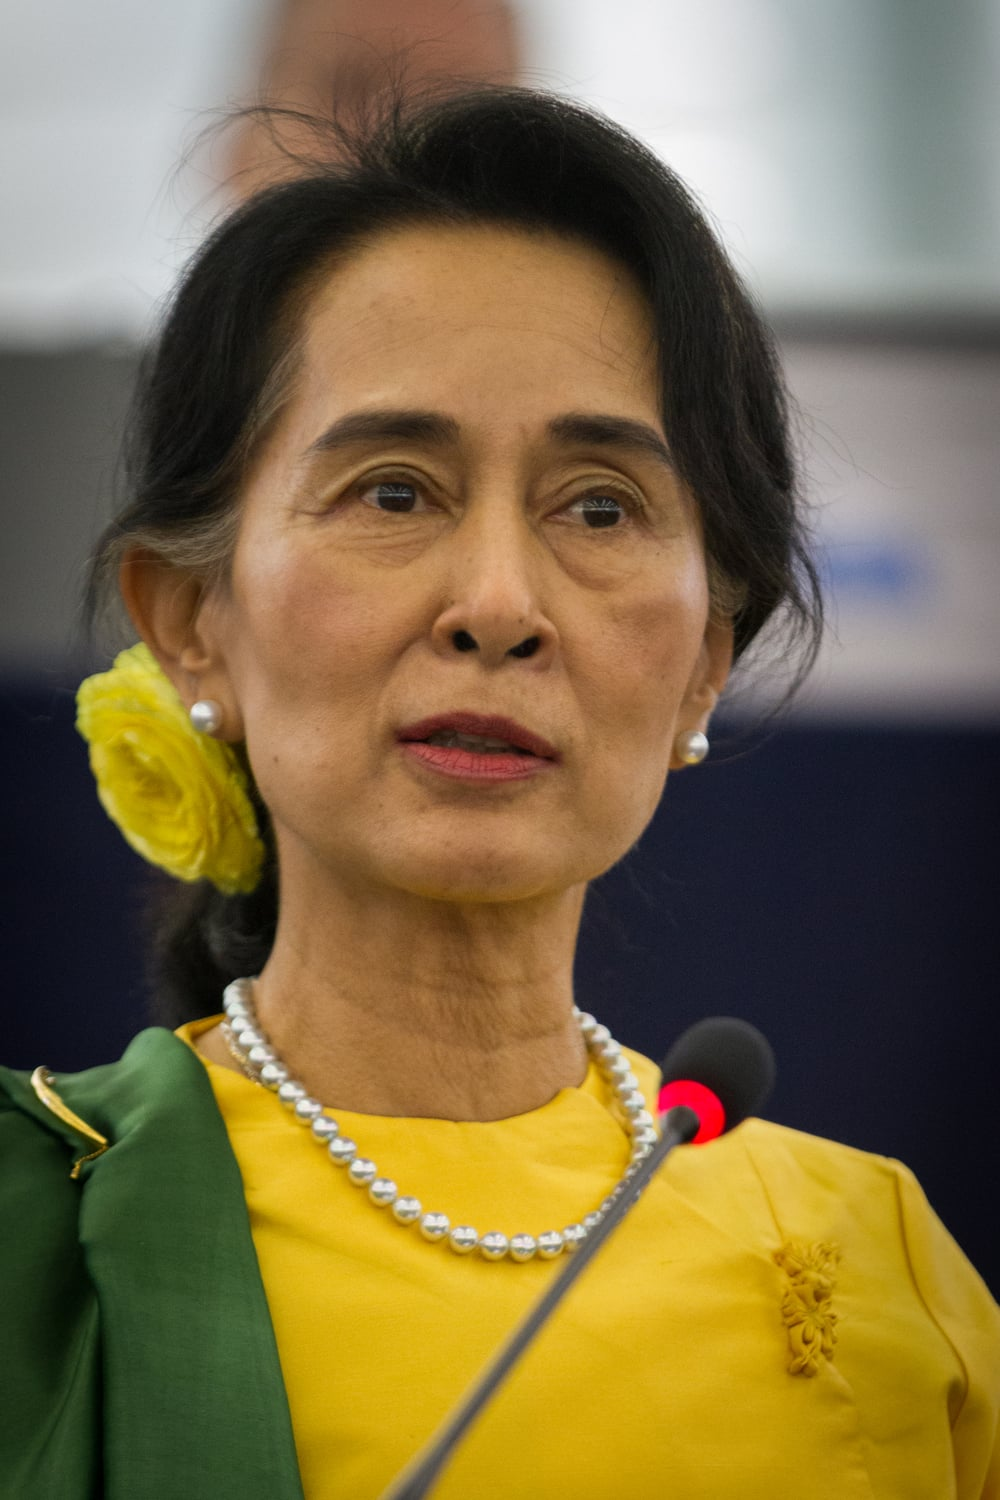 """Aung San Suu Kyi"" by Claude Truong-Ngoc is licensed under CC BY-SA 3.0."